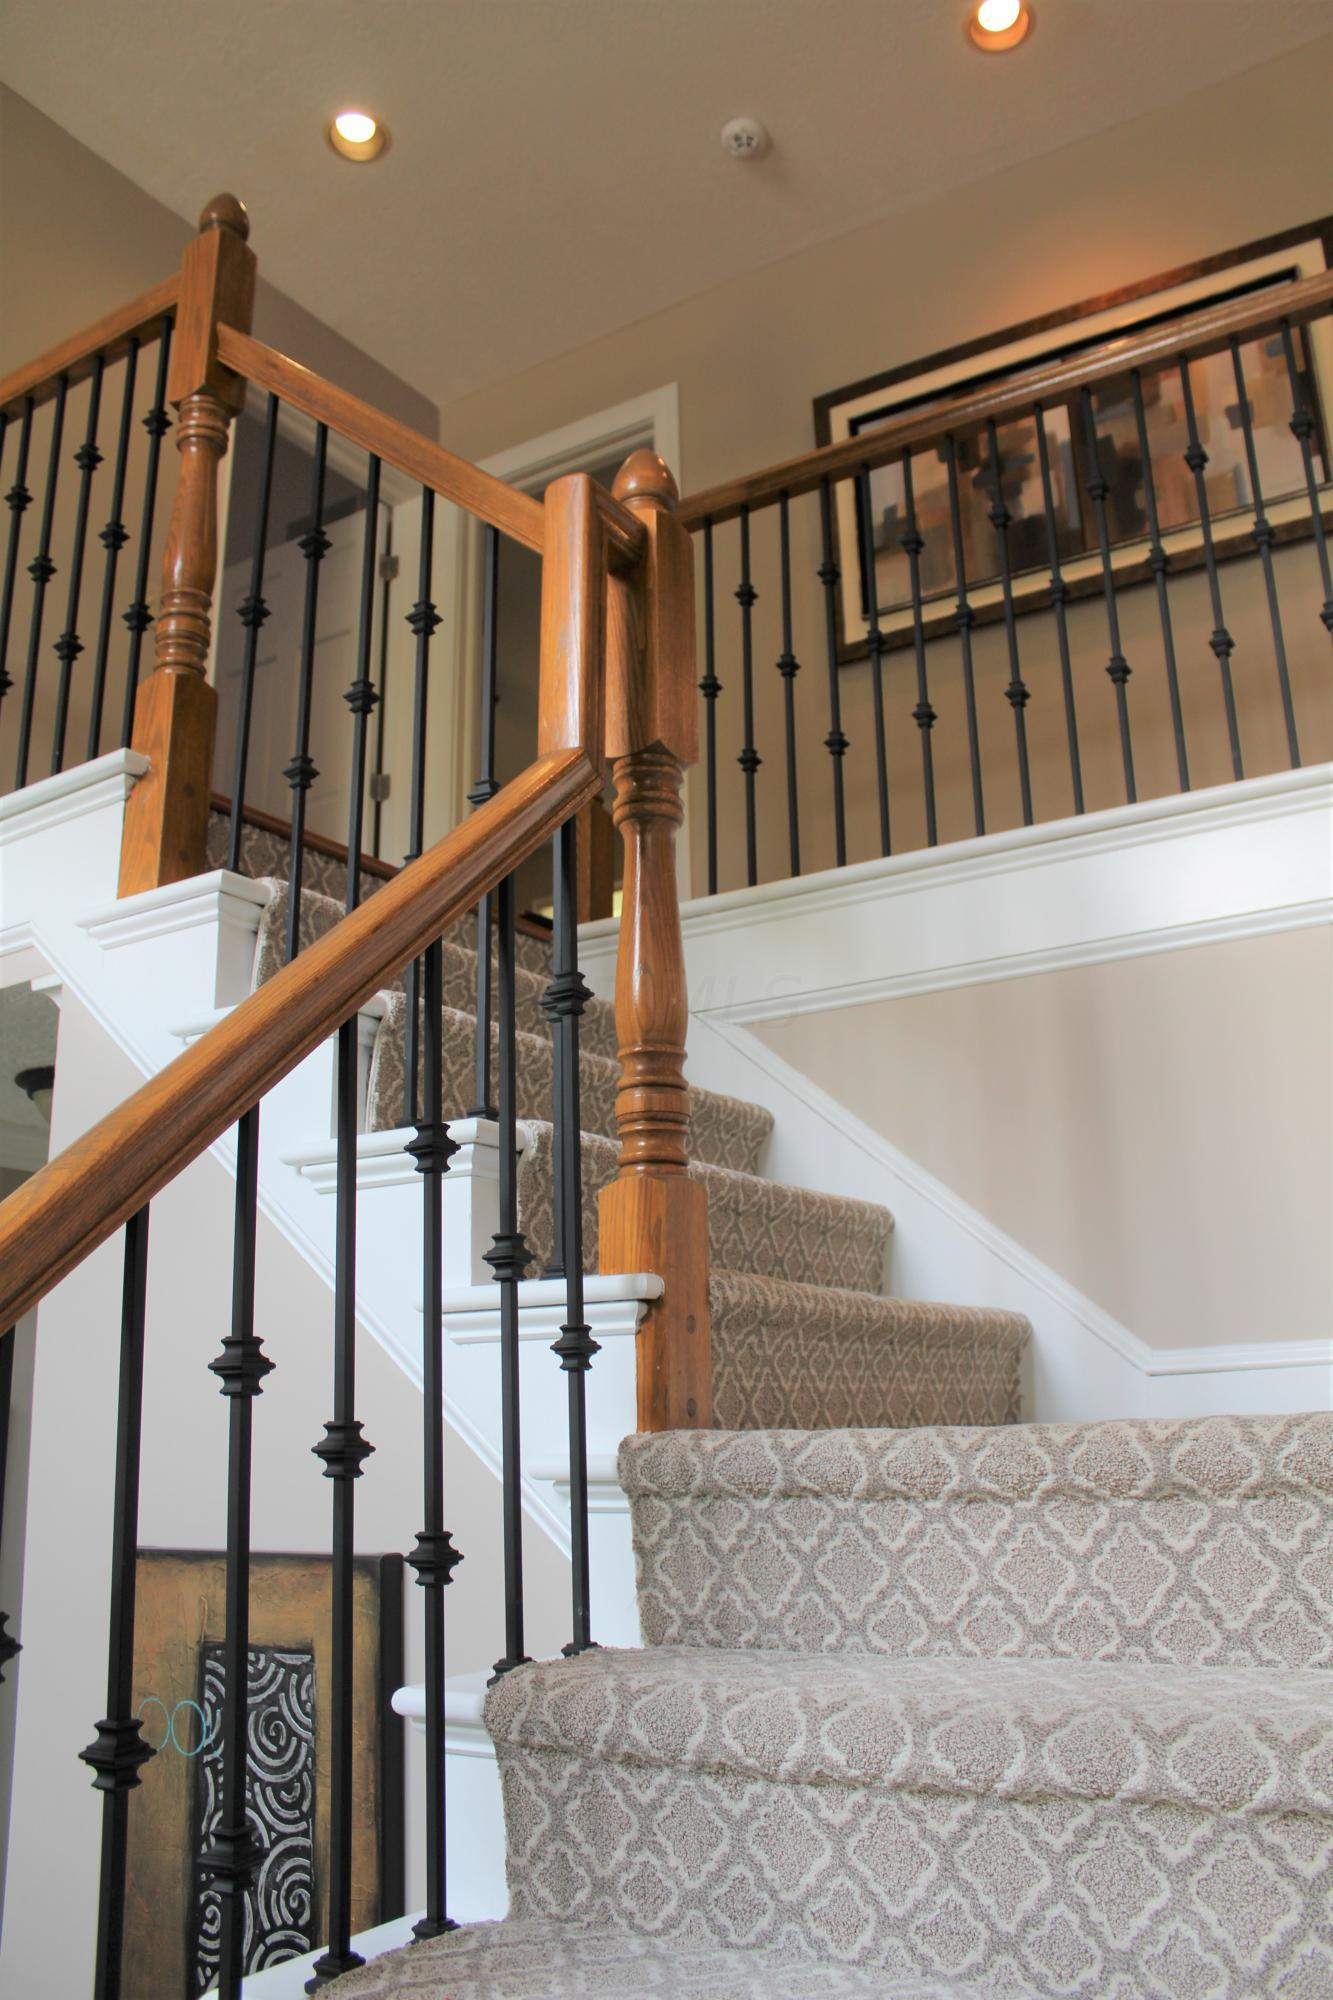 To upper level from foyer